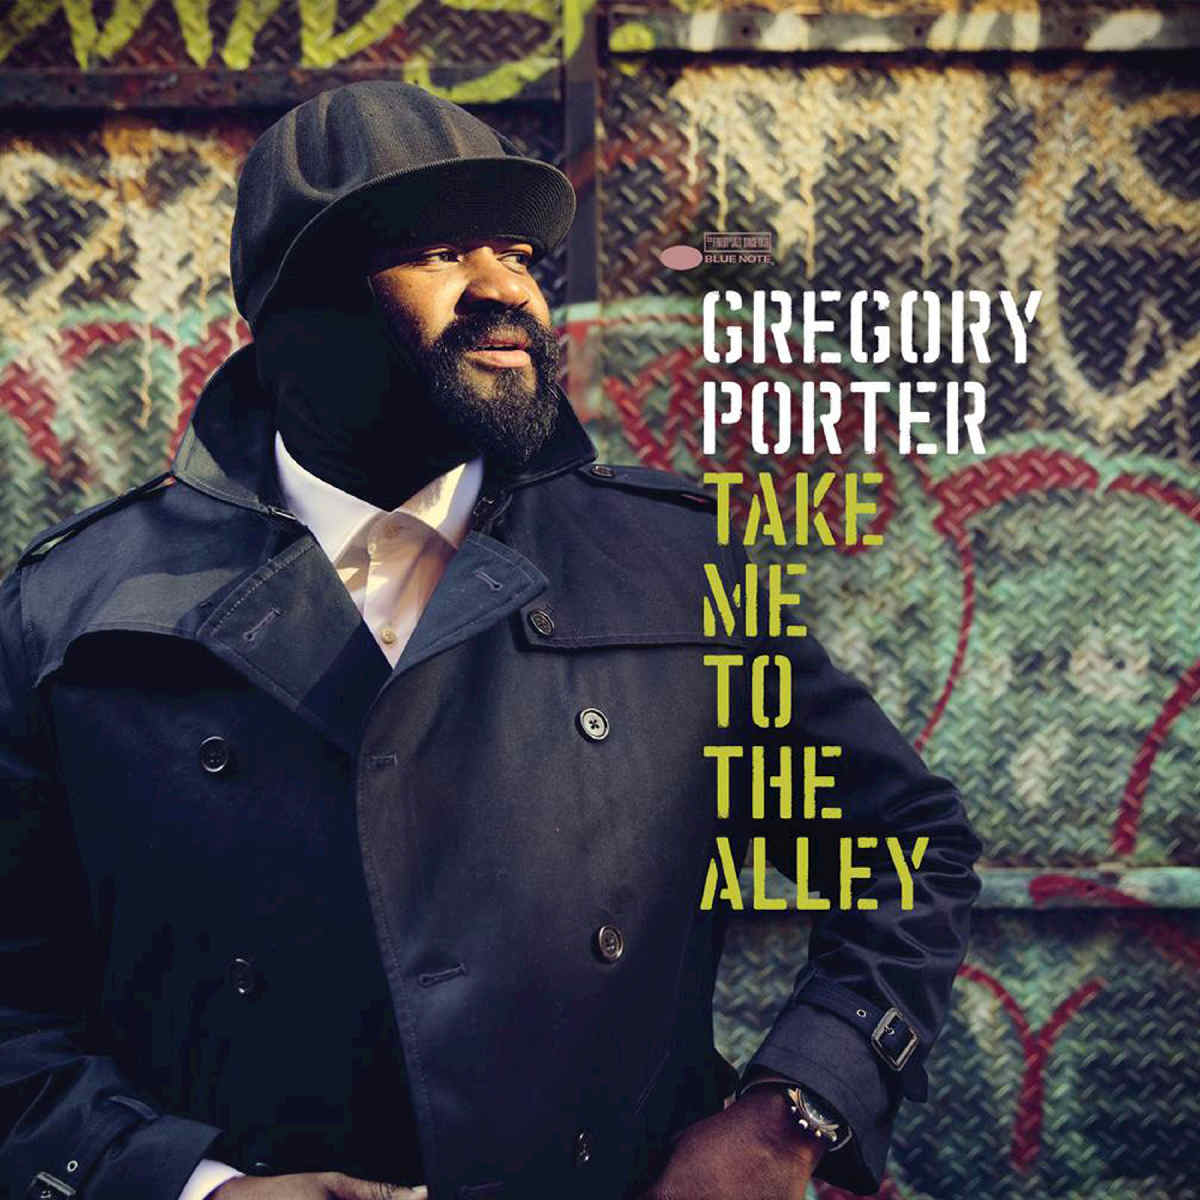 gregory porter take me to the alley mp3 download